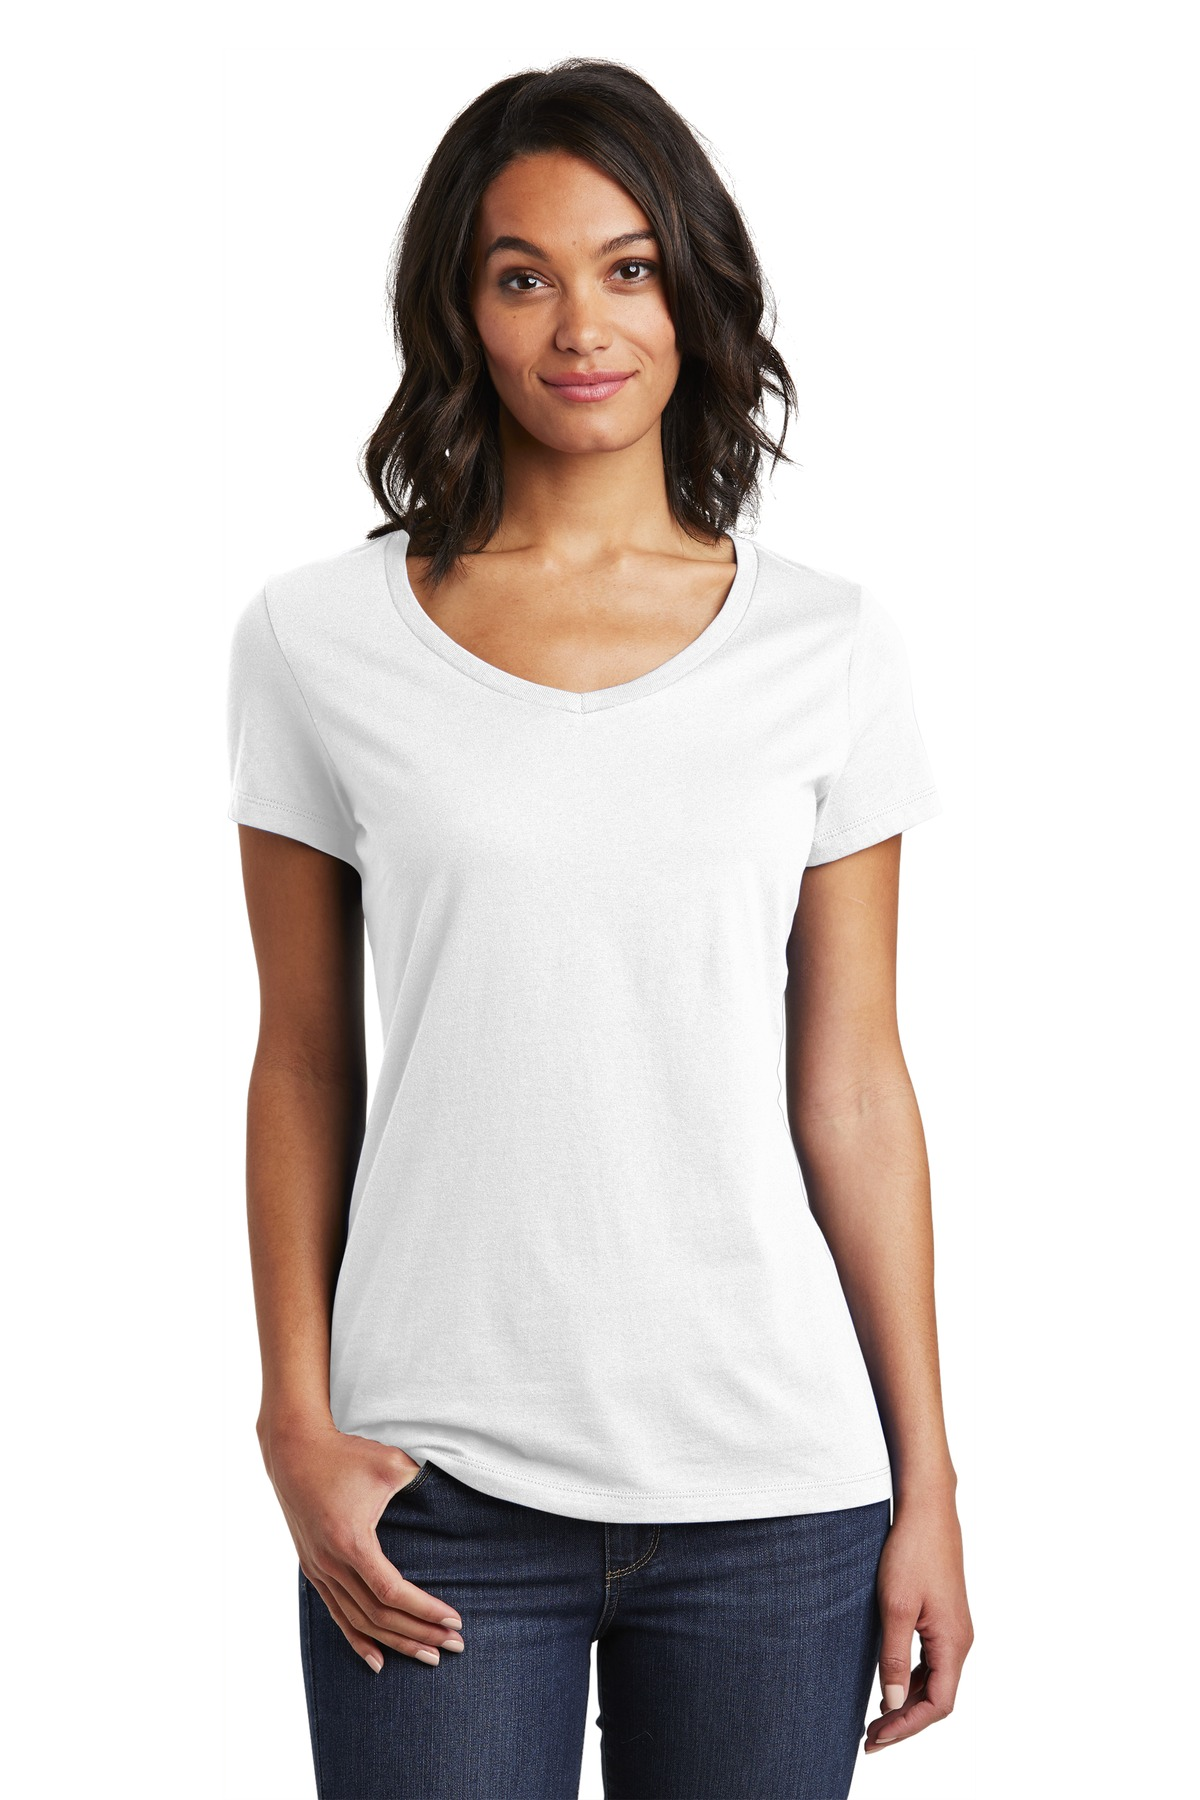 District  ®  Women's Very Important Tee  ®  V-Neck. DT6503 - White